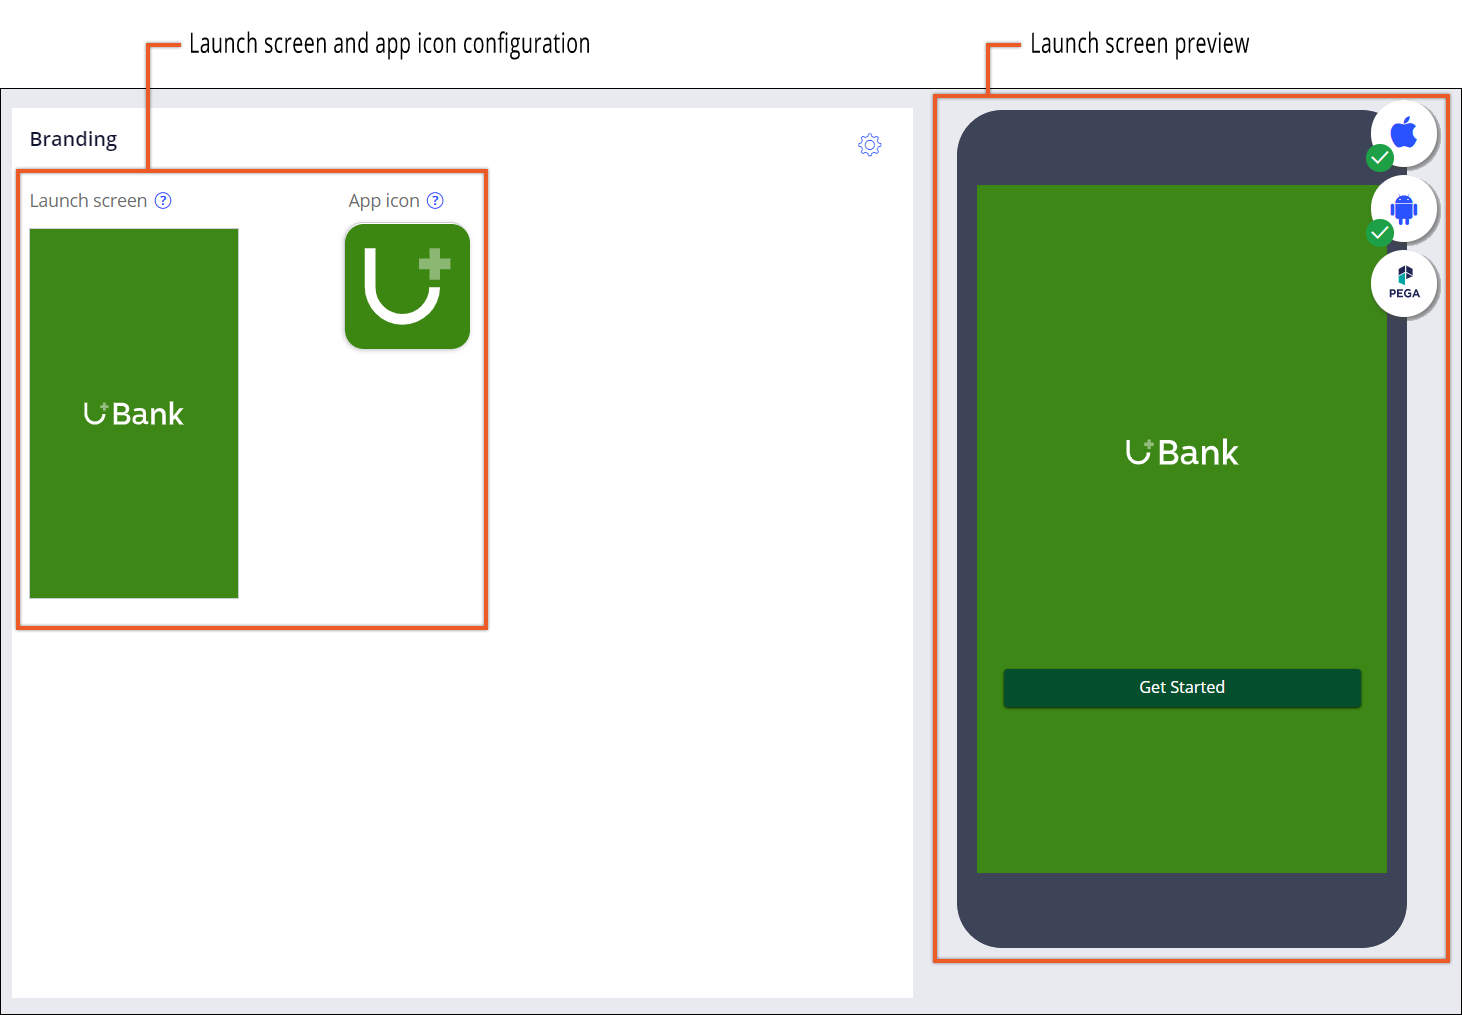 Configuring a custom launch screen and icon for a mobile app with the help of the                 live preview.